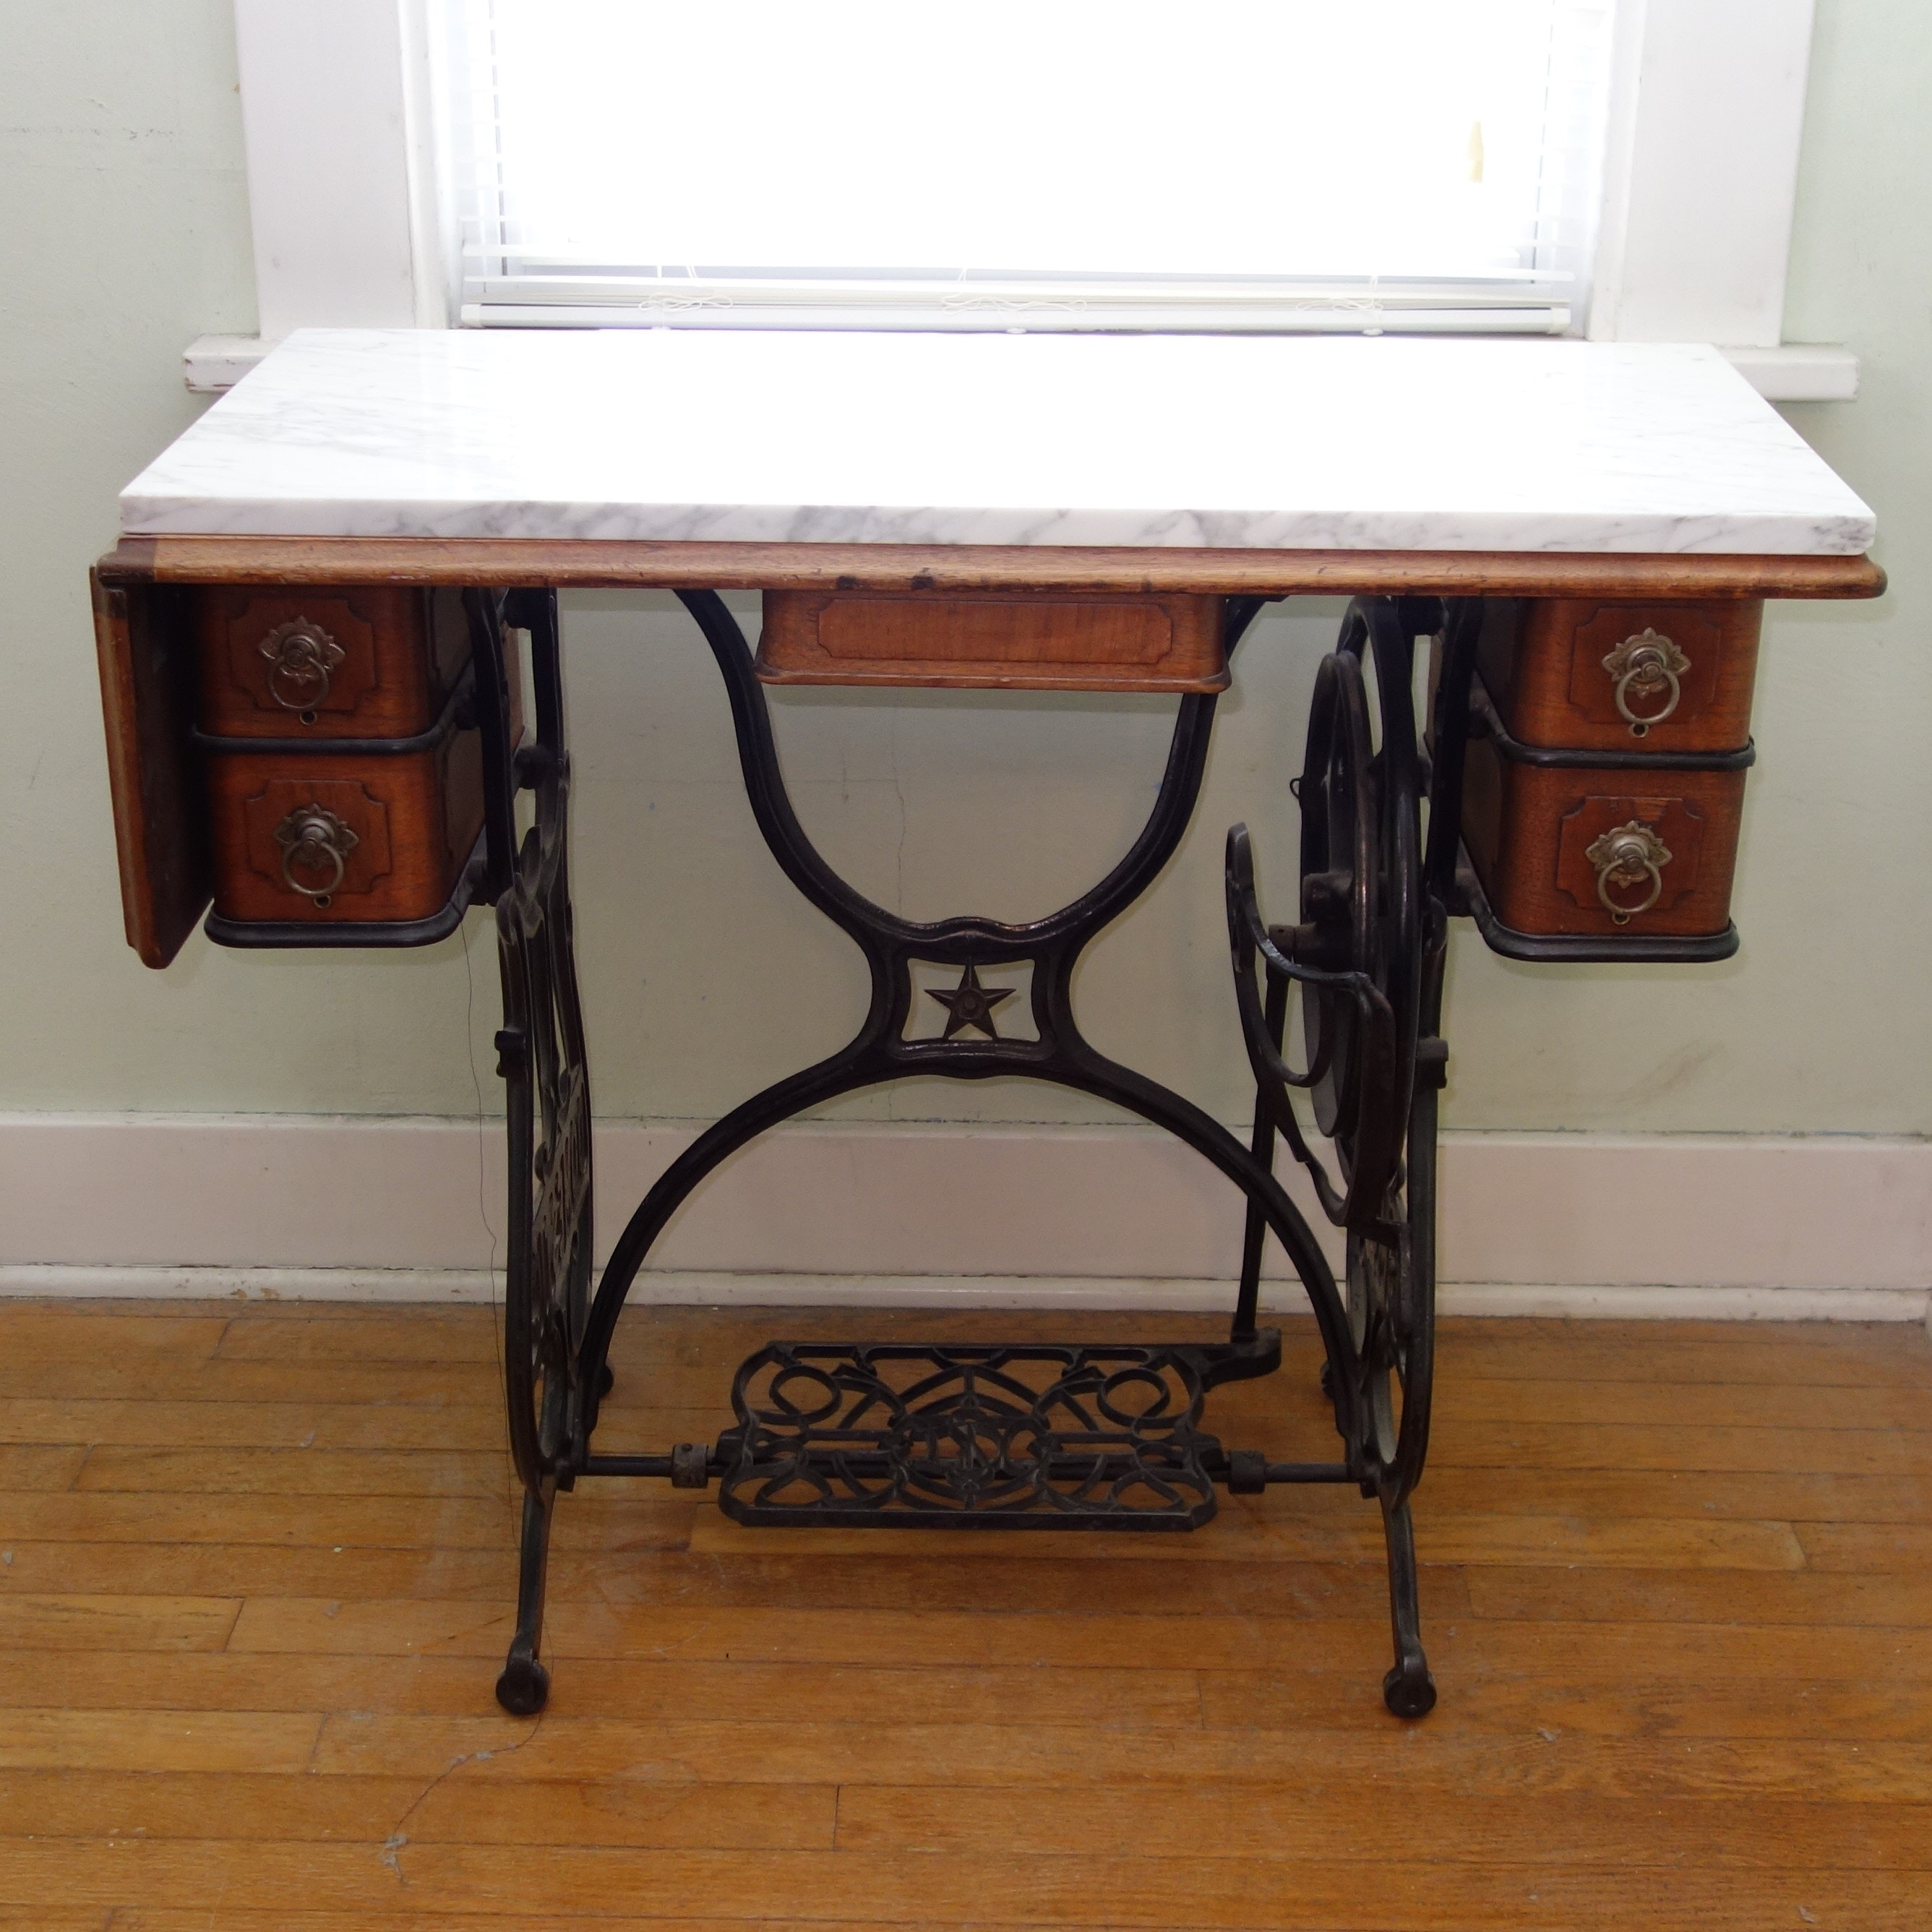 Antique Marble Top Sewing Table & Supplies